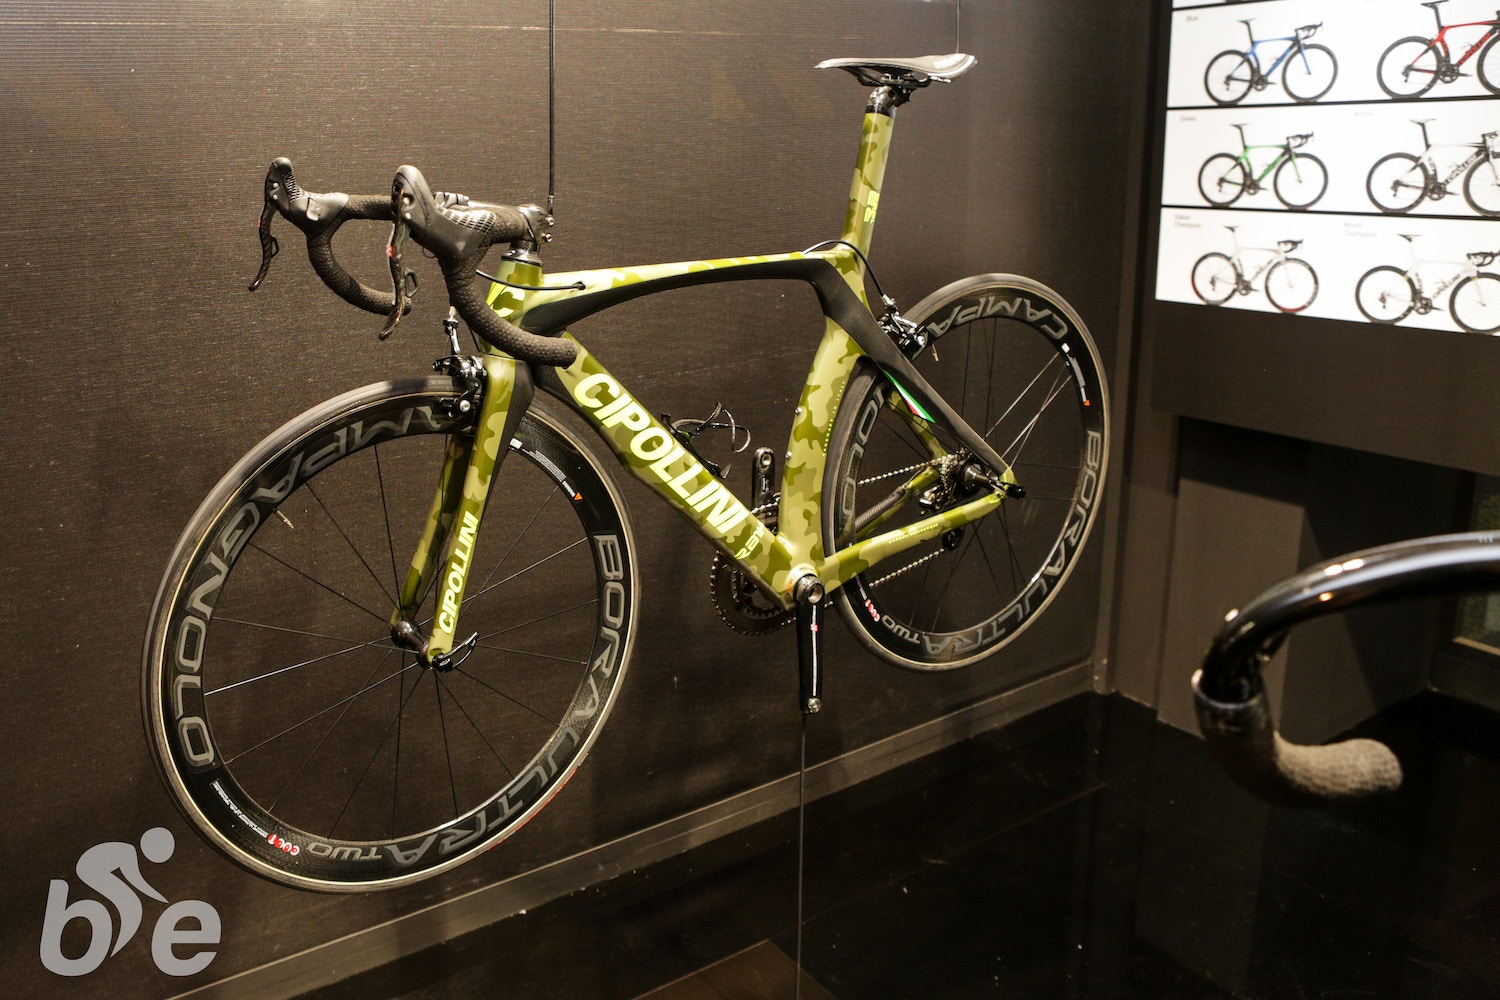 Eurobike 2014 Hot Products #1